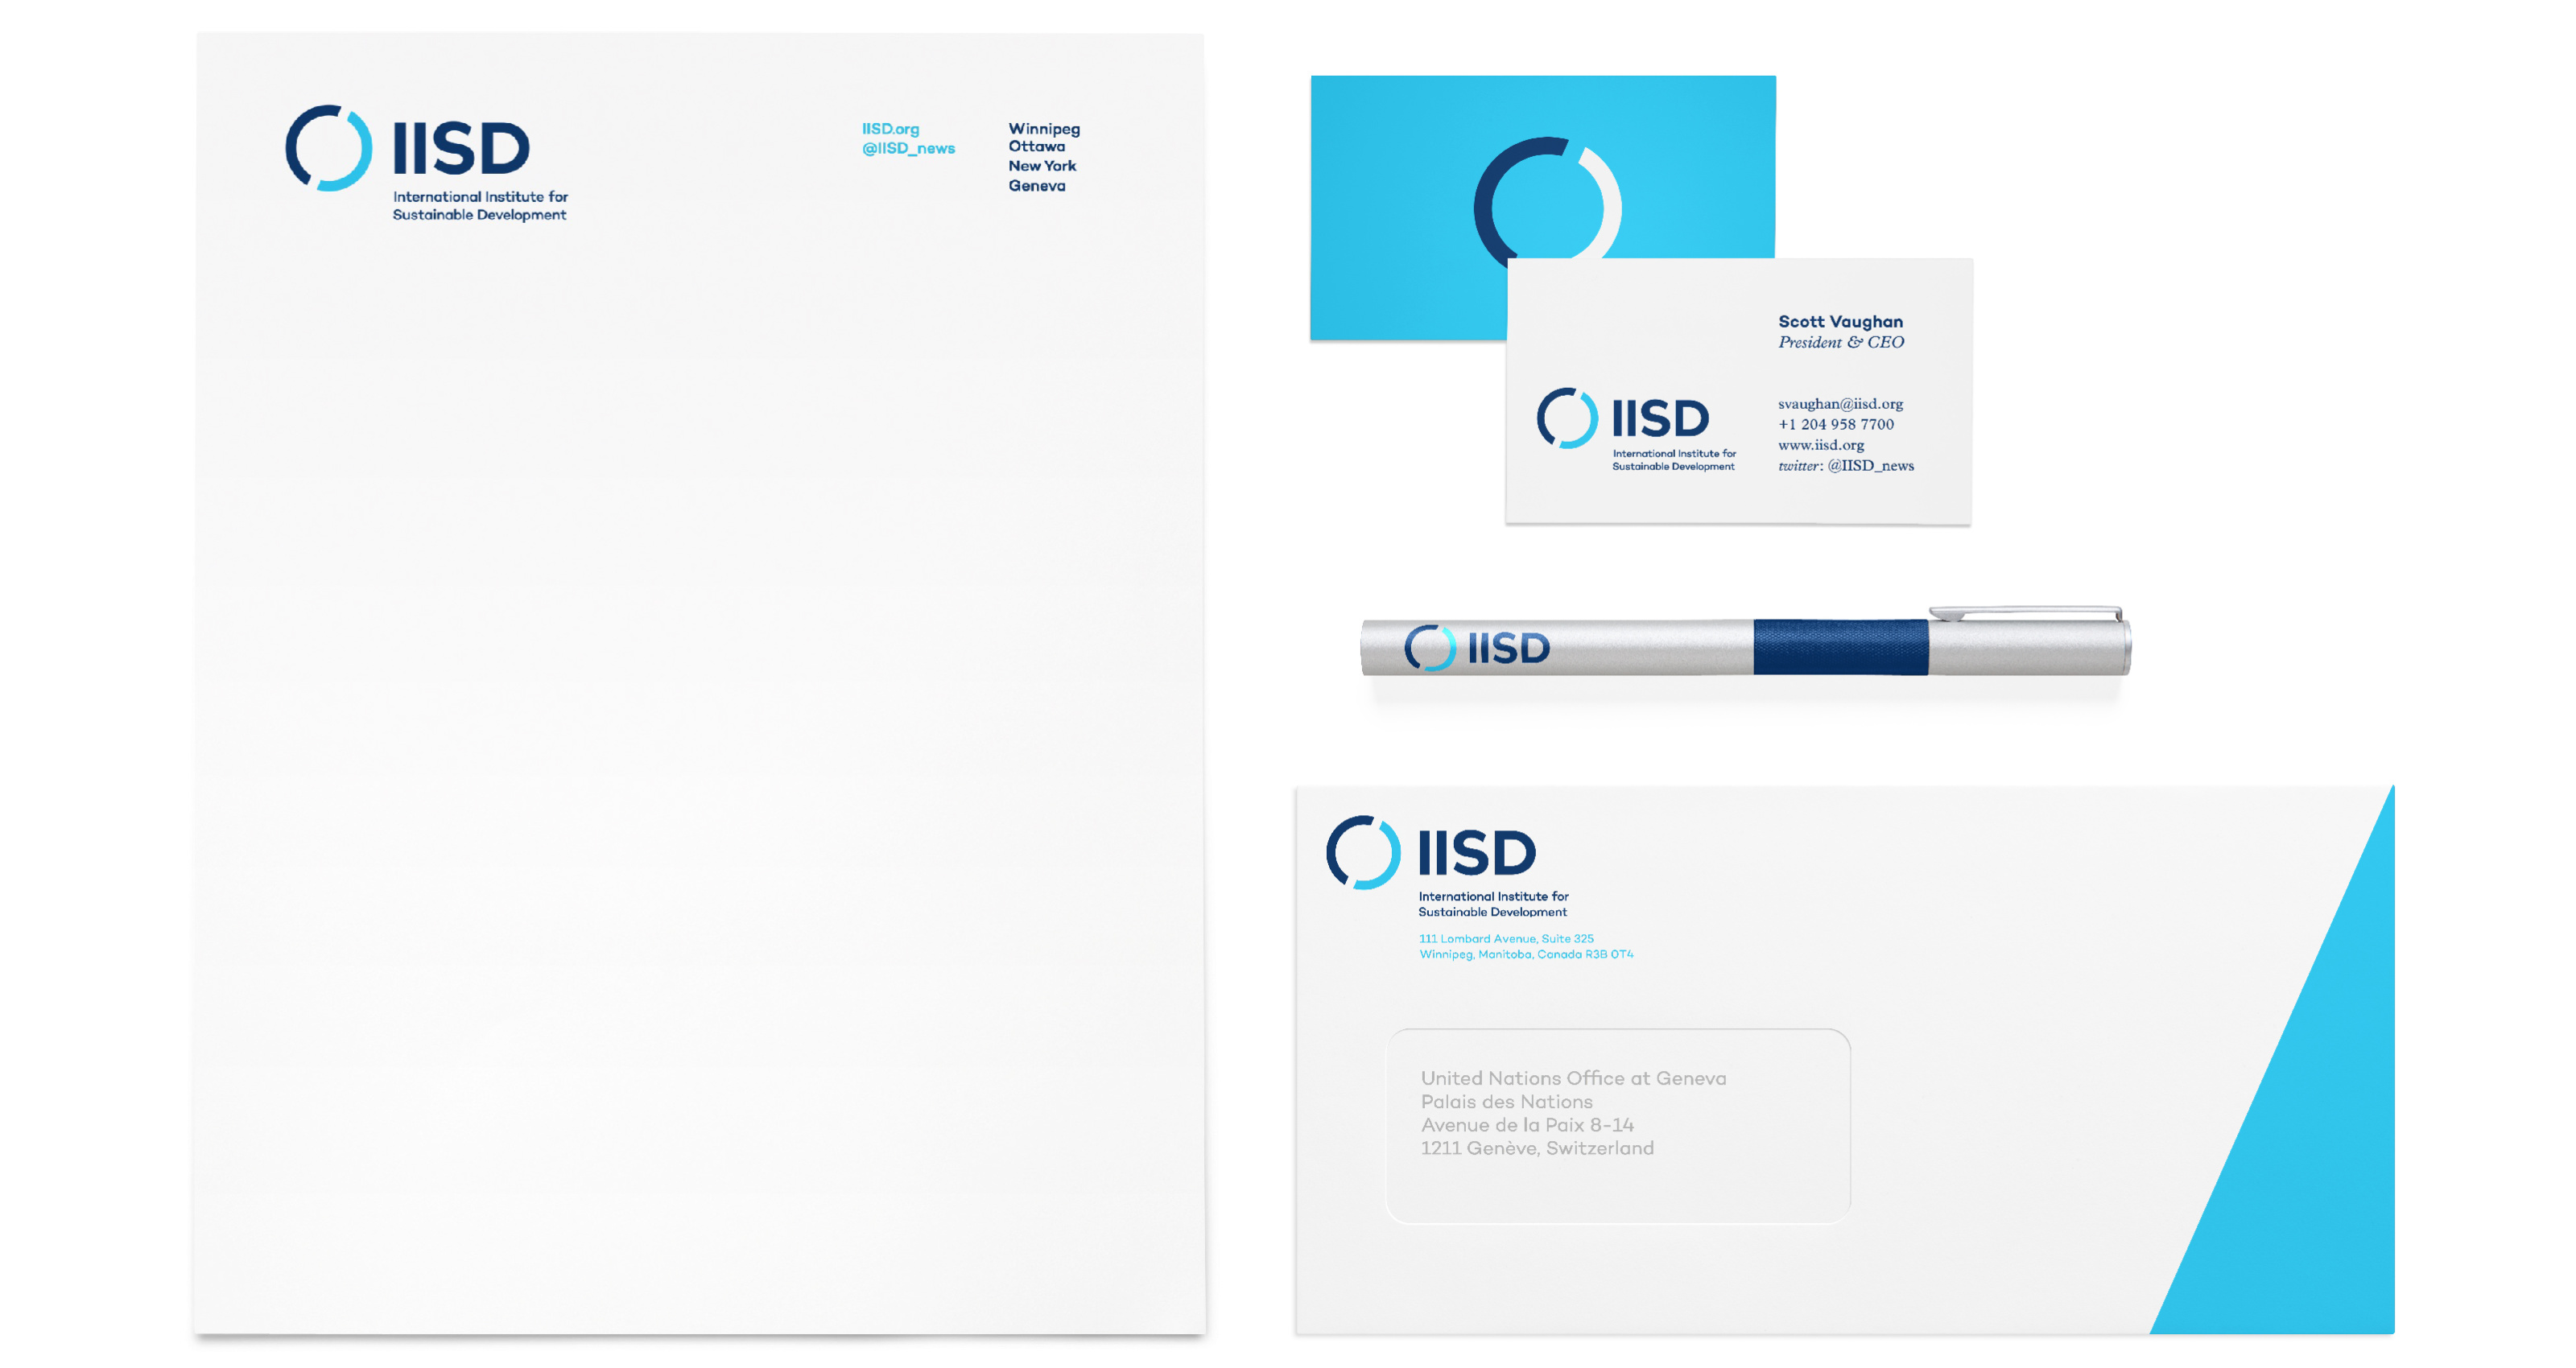 Examples of IISD's stationery brand applications. The IISD brand treatment is applied to a letterhead, business cards, a pen and an envelope.